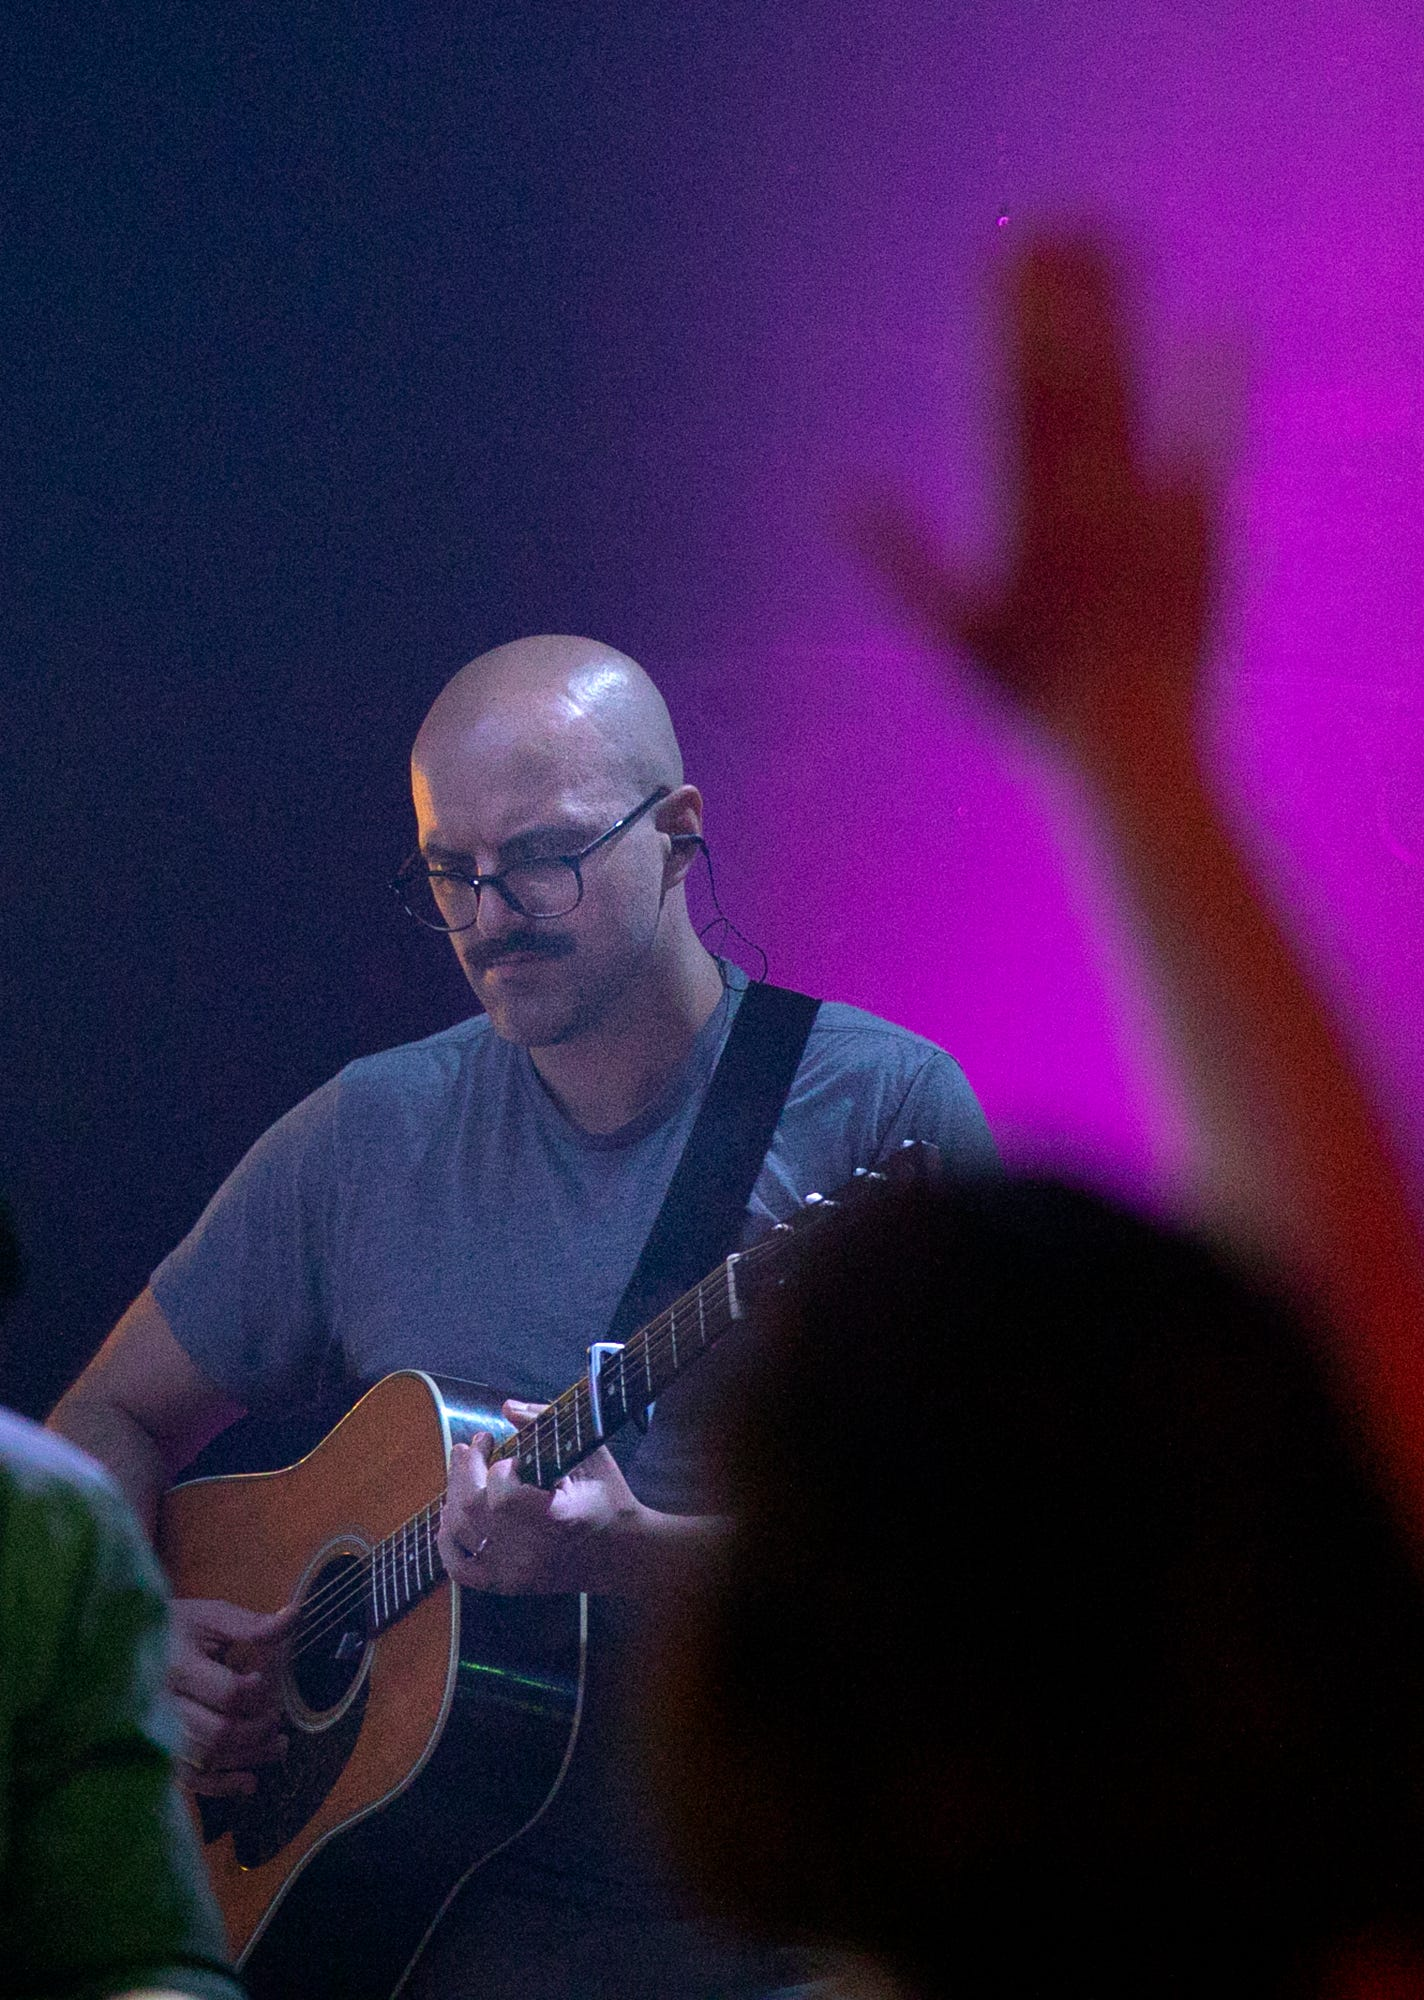 Chris Graham plays guitar in LIFE Vineyard Church's band on the Near East Side, where he has become involved in church again.